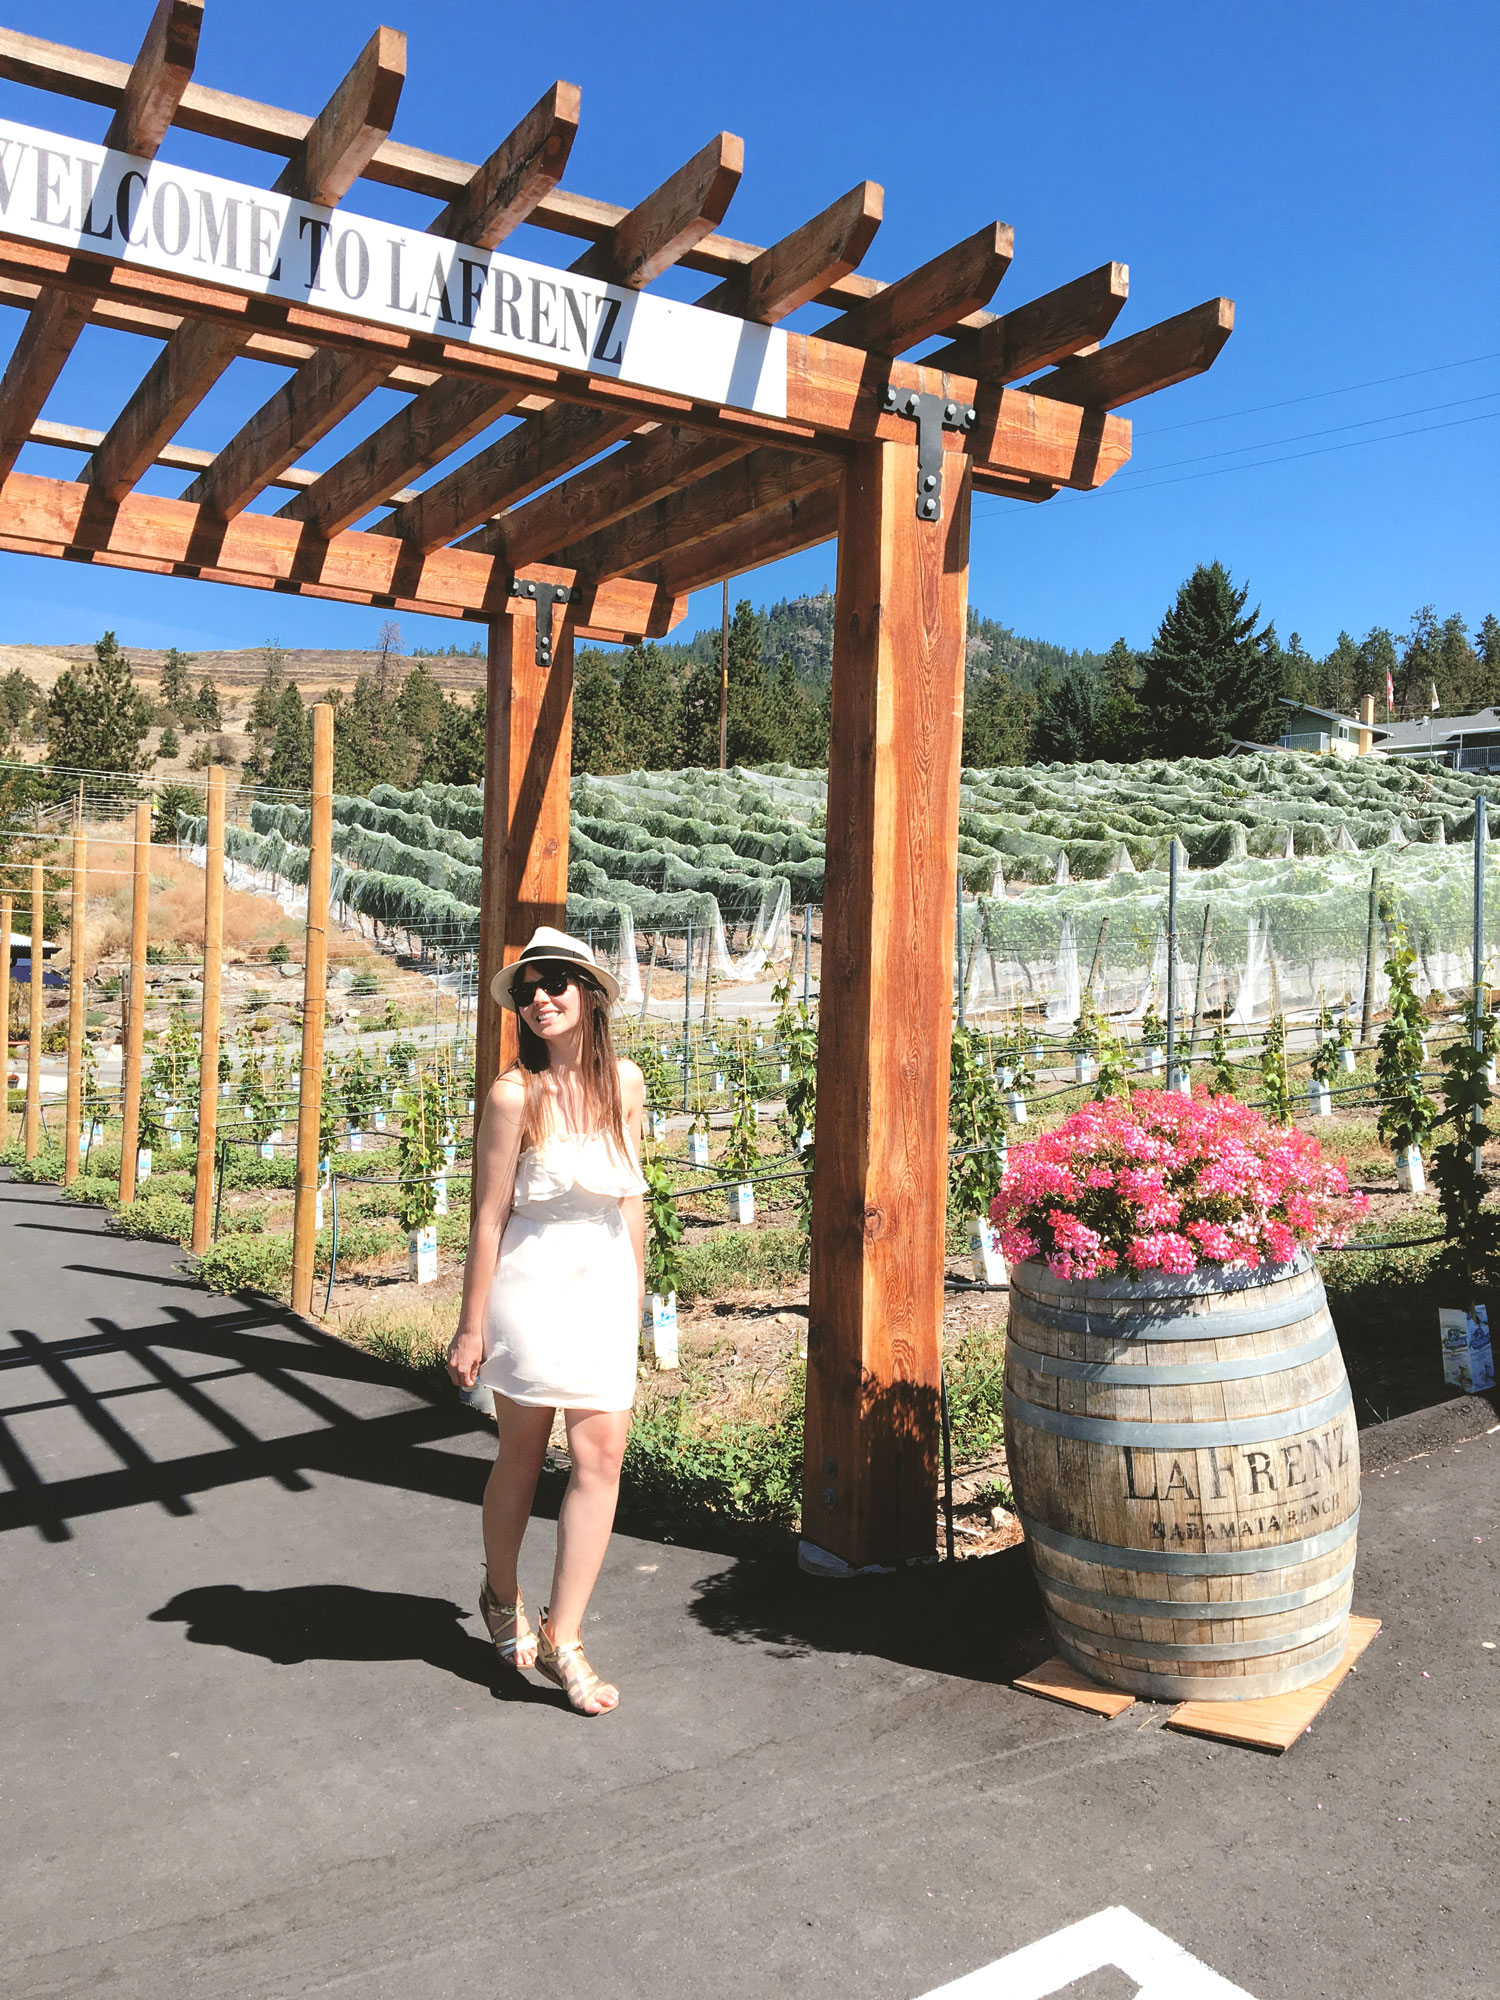 la-frenz-winery-naramata-guide